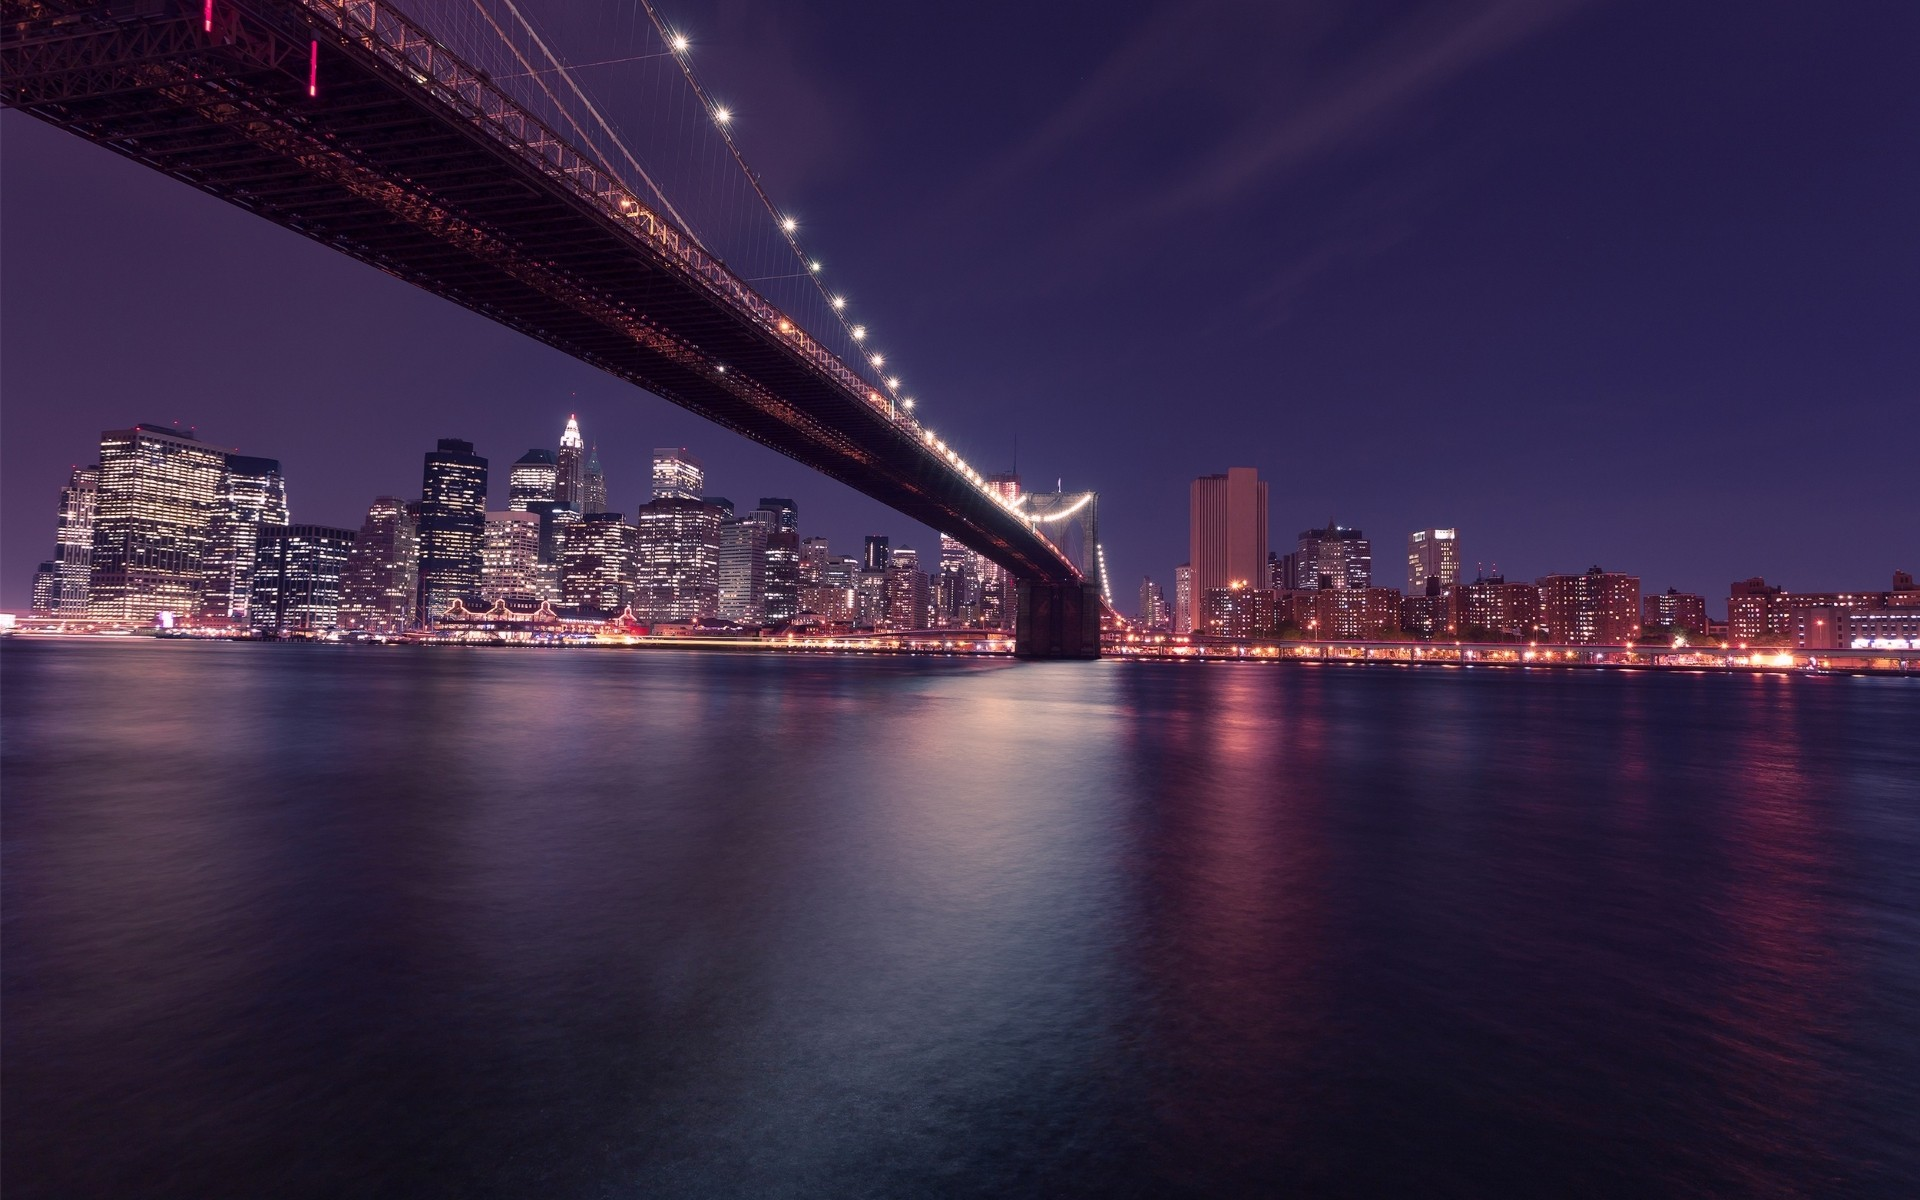 hd charming river brooklyn bridge image download